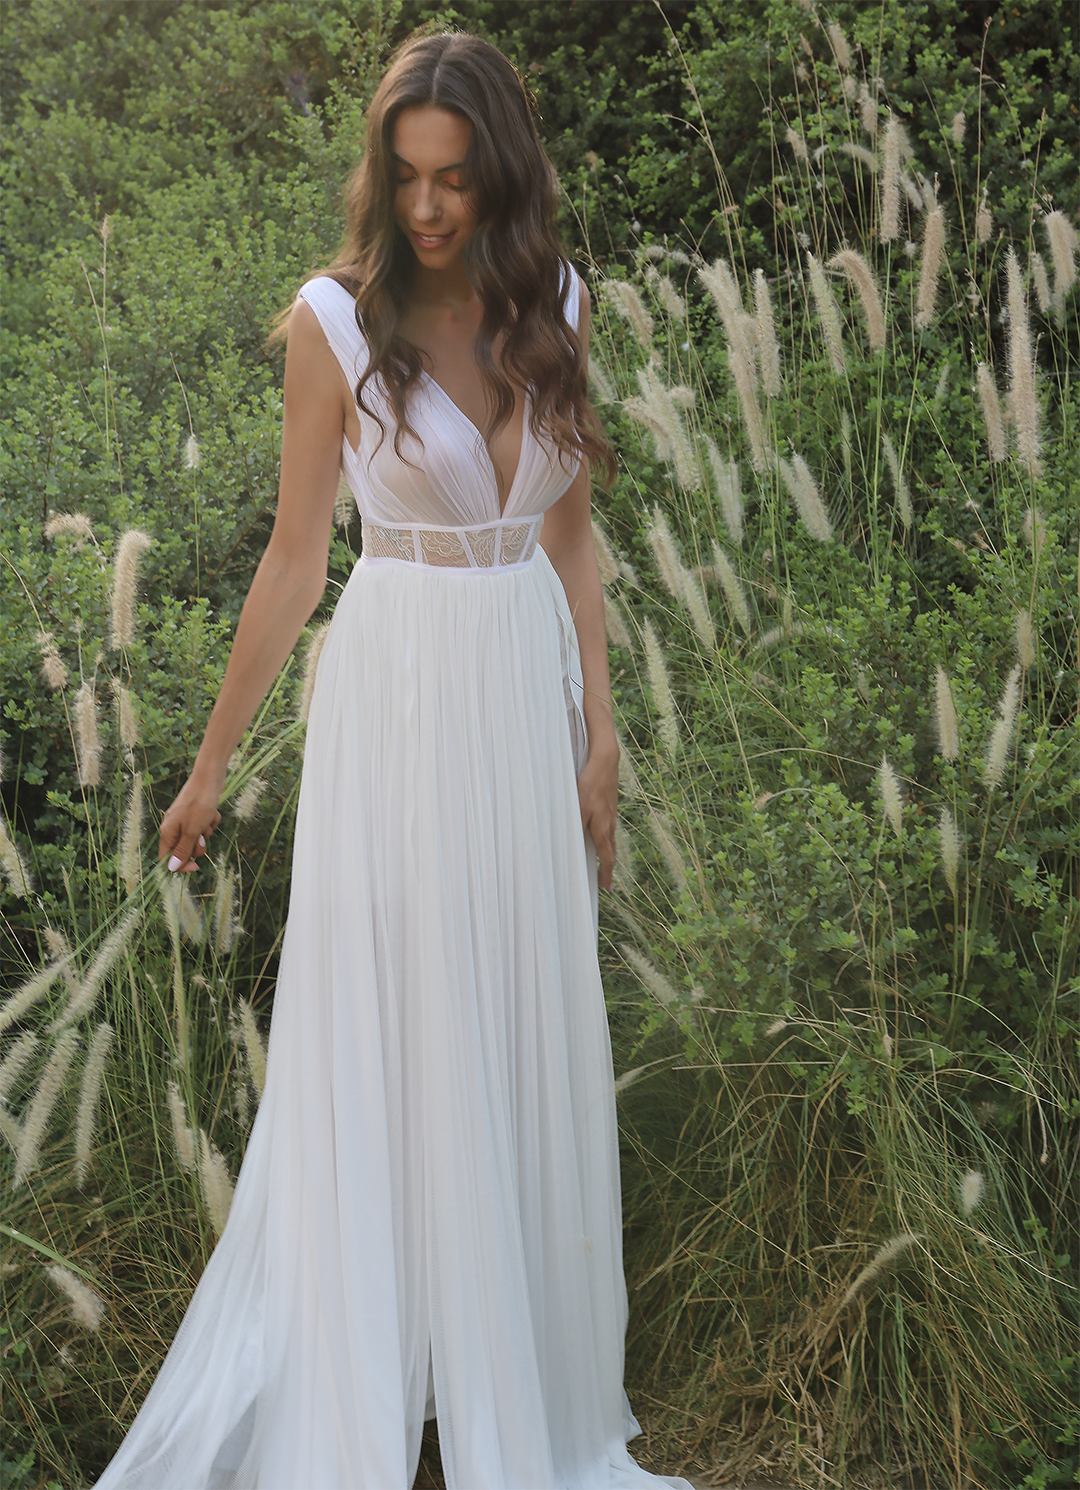 126-The MUSK Collection ELISH Bridal - 2